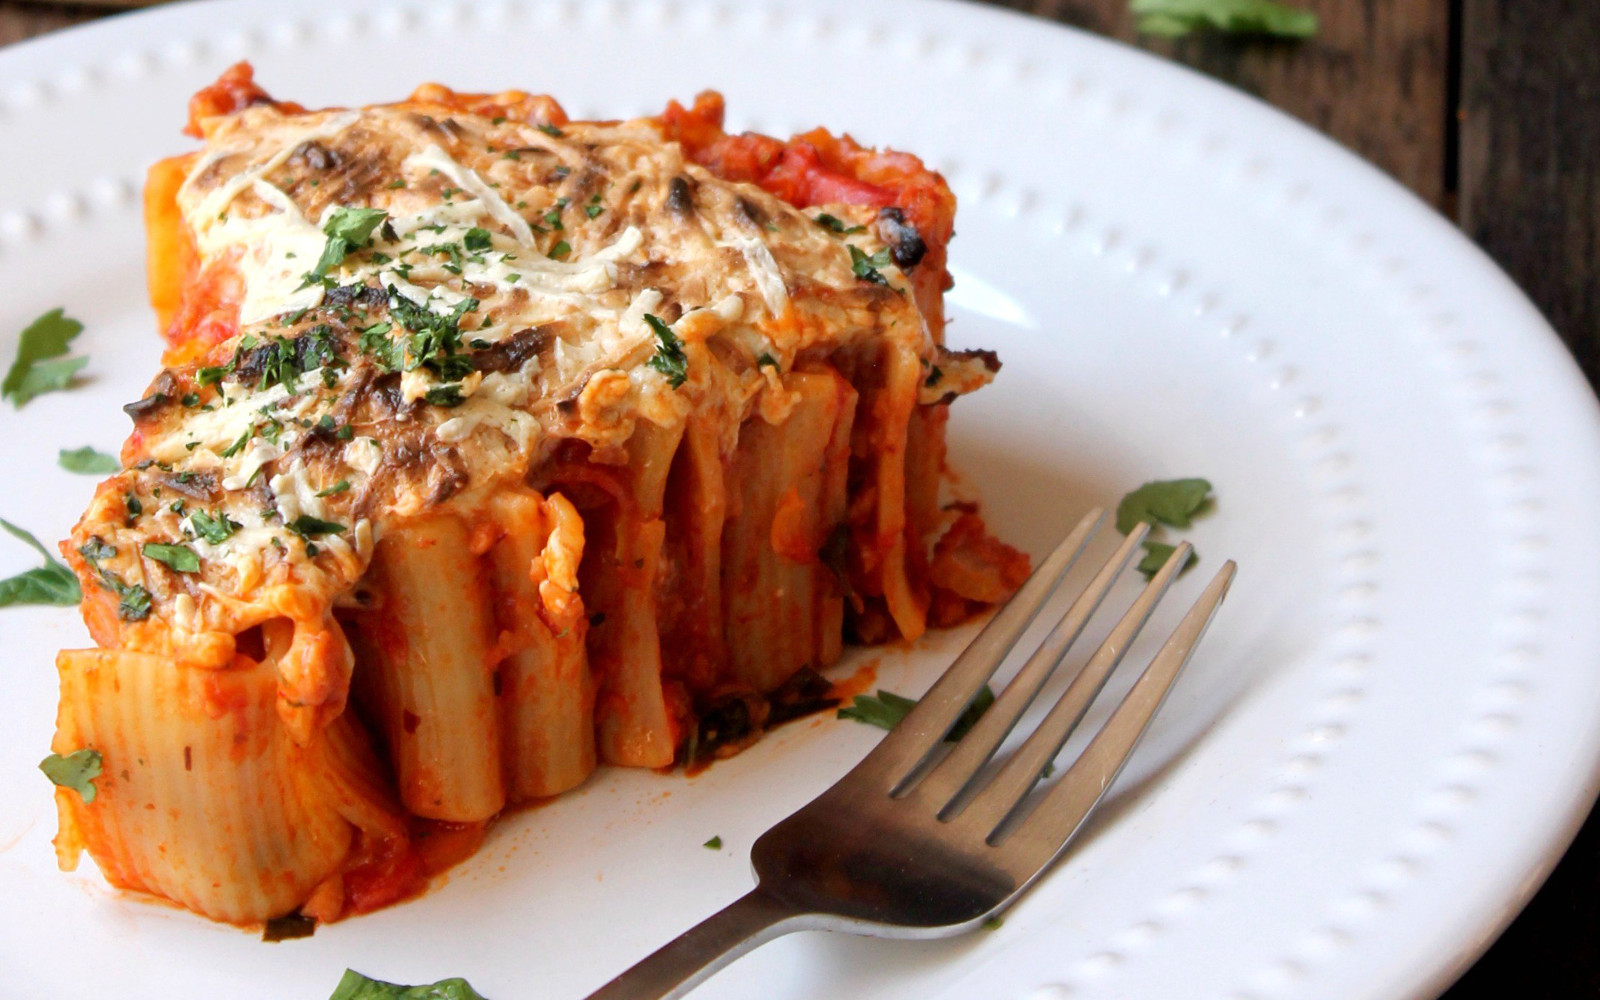 Rigatoni Pie With Spicy Pomodoro Sauce [Vegan]